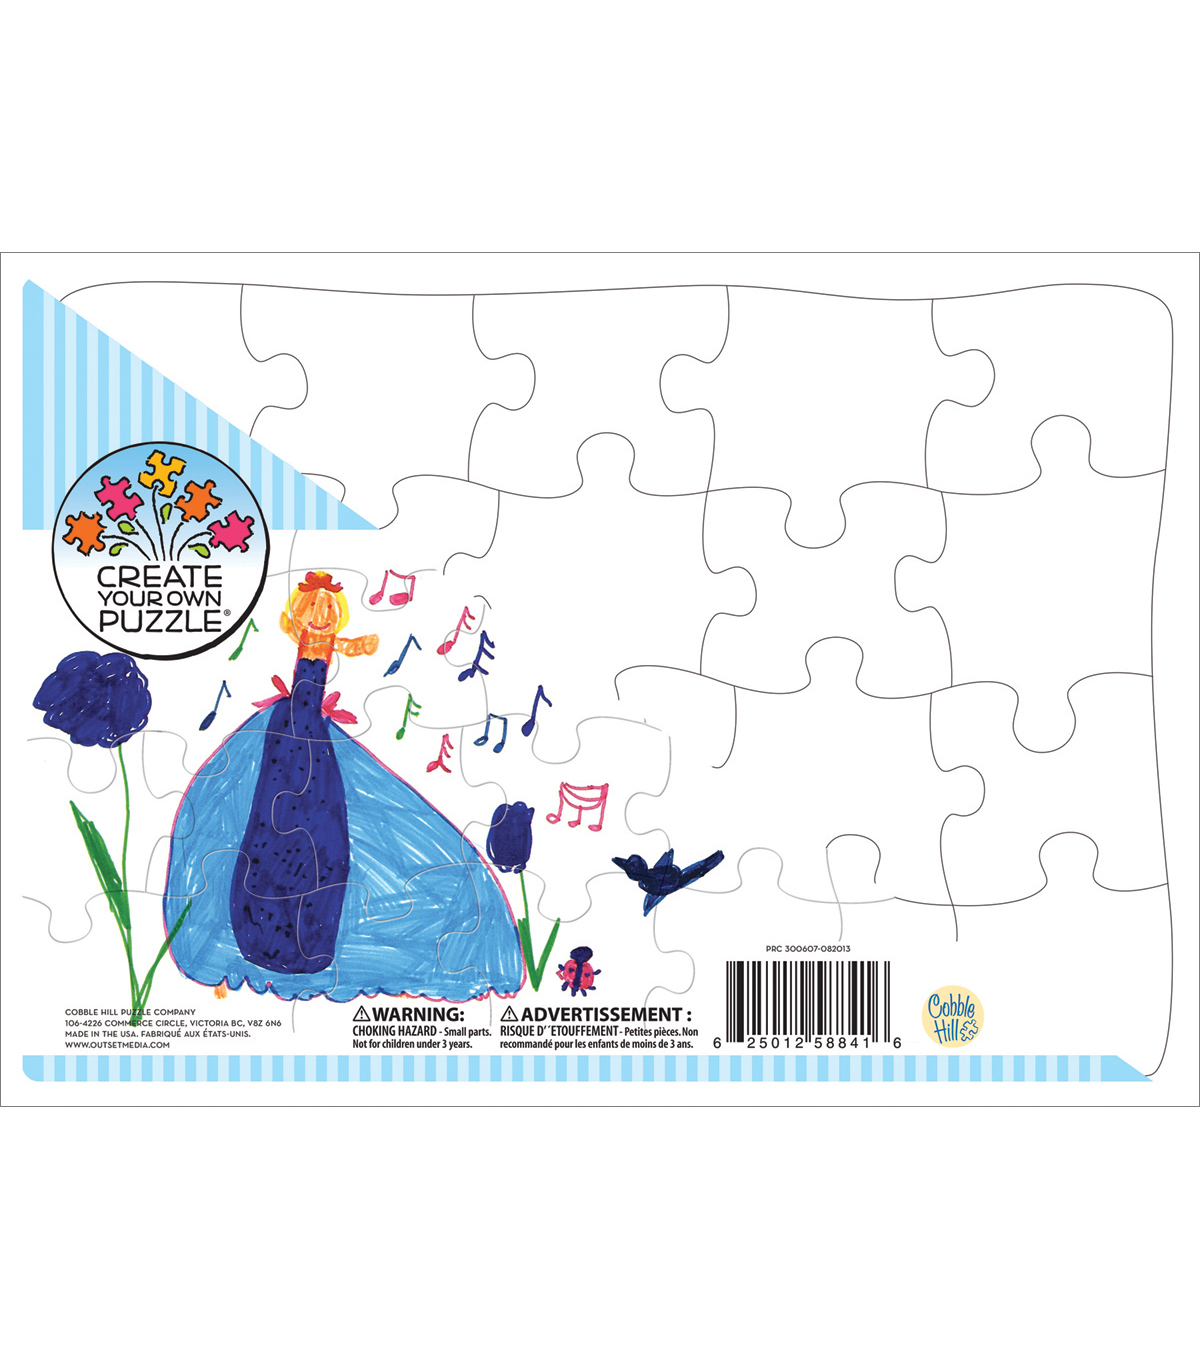 create your own puzzle 14 x10 20 piece jigsaw puzzle joann